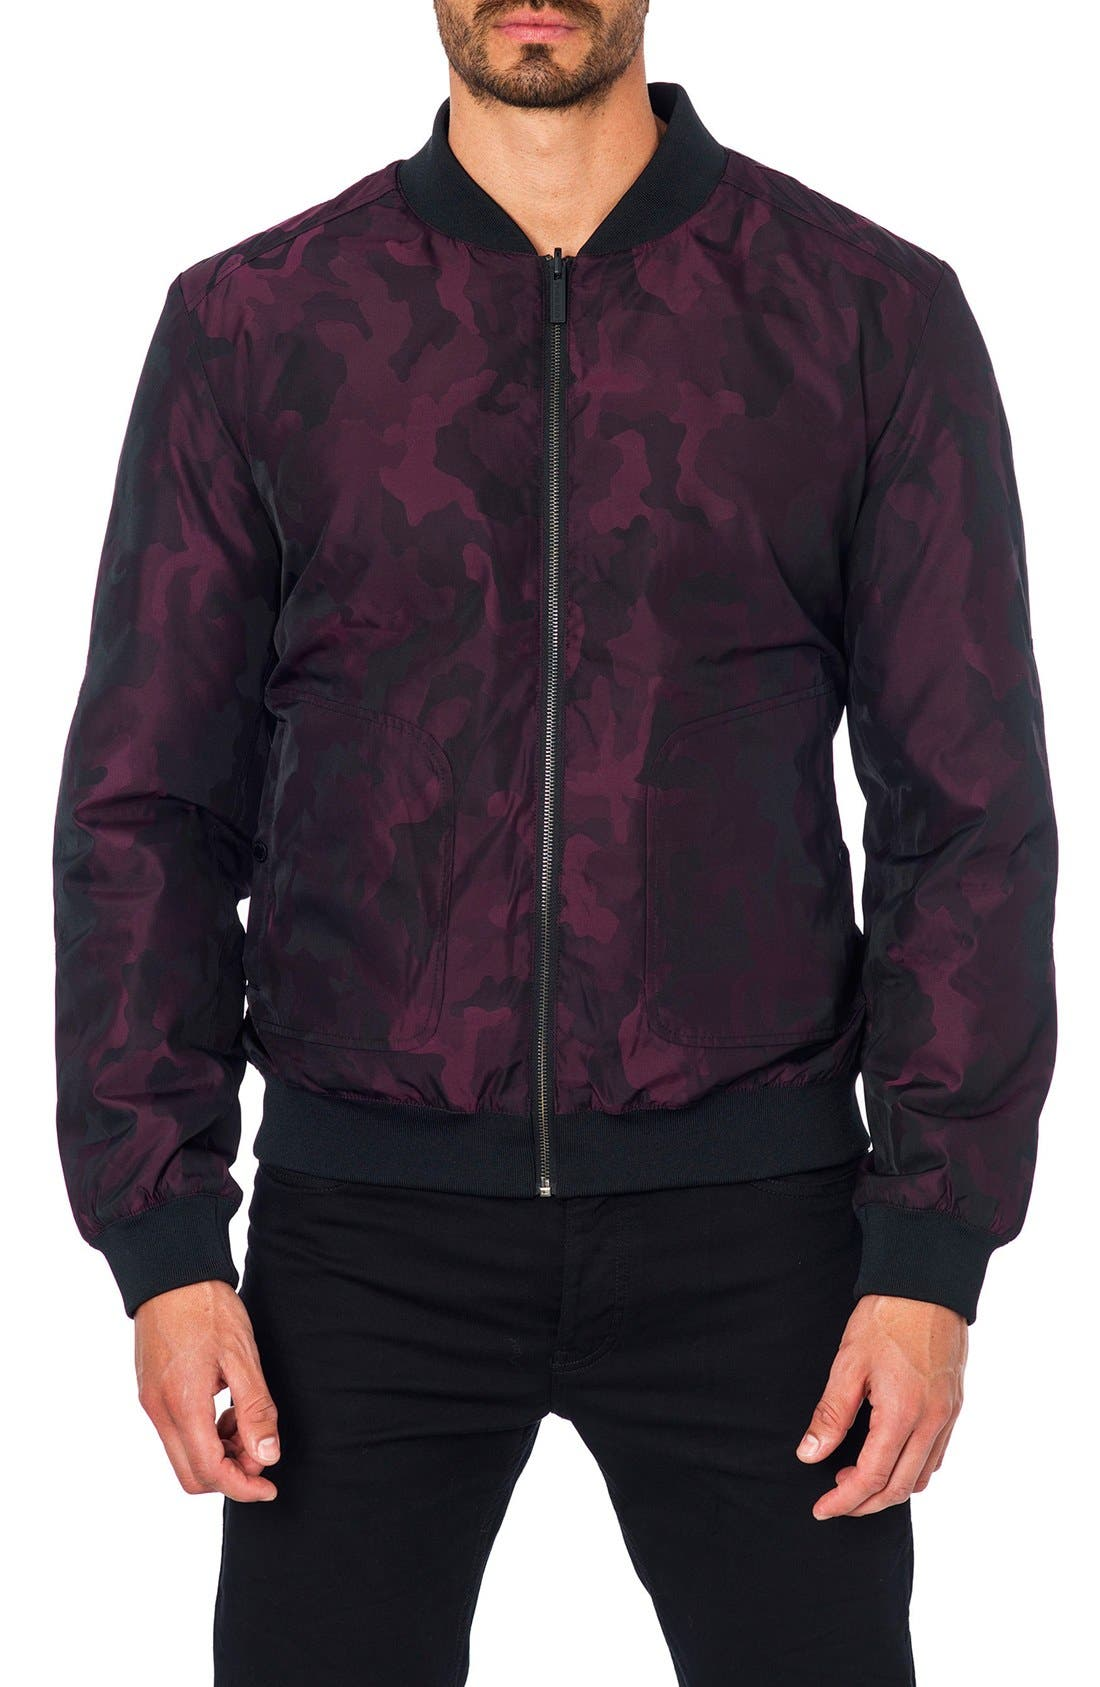 New York Reversible Bomber Jacket,                         Main,                         color, Burgundy Camo/ Black Quilted